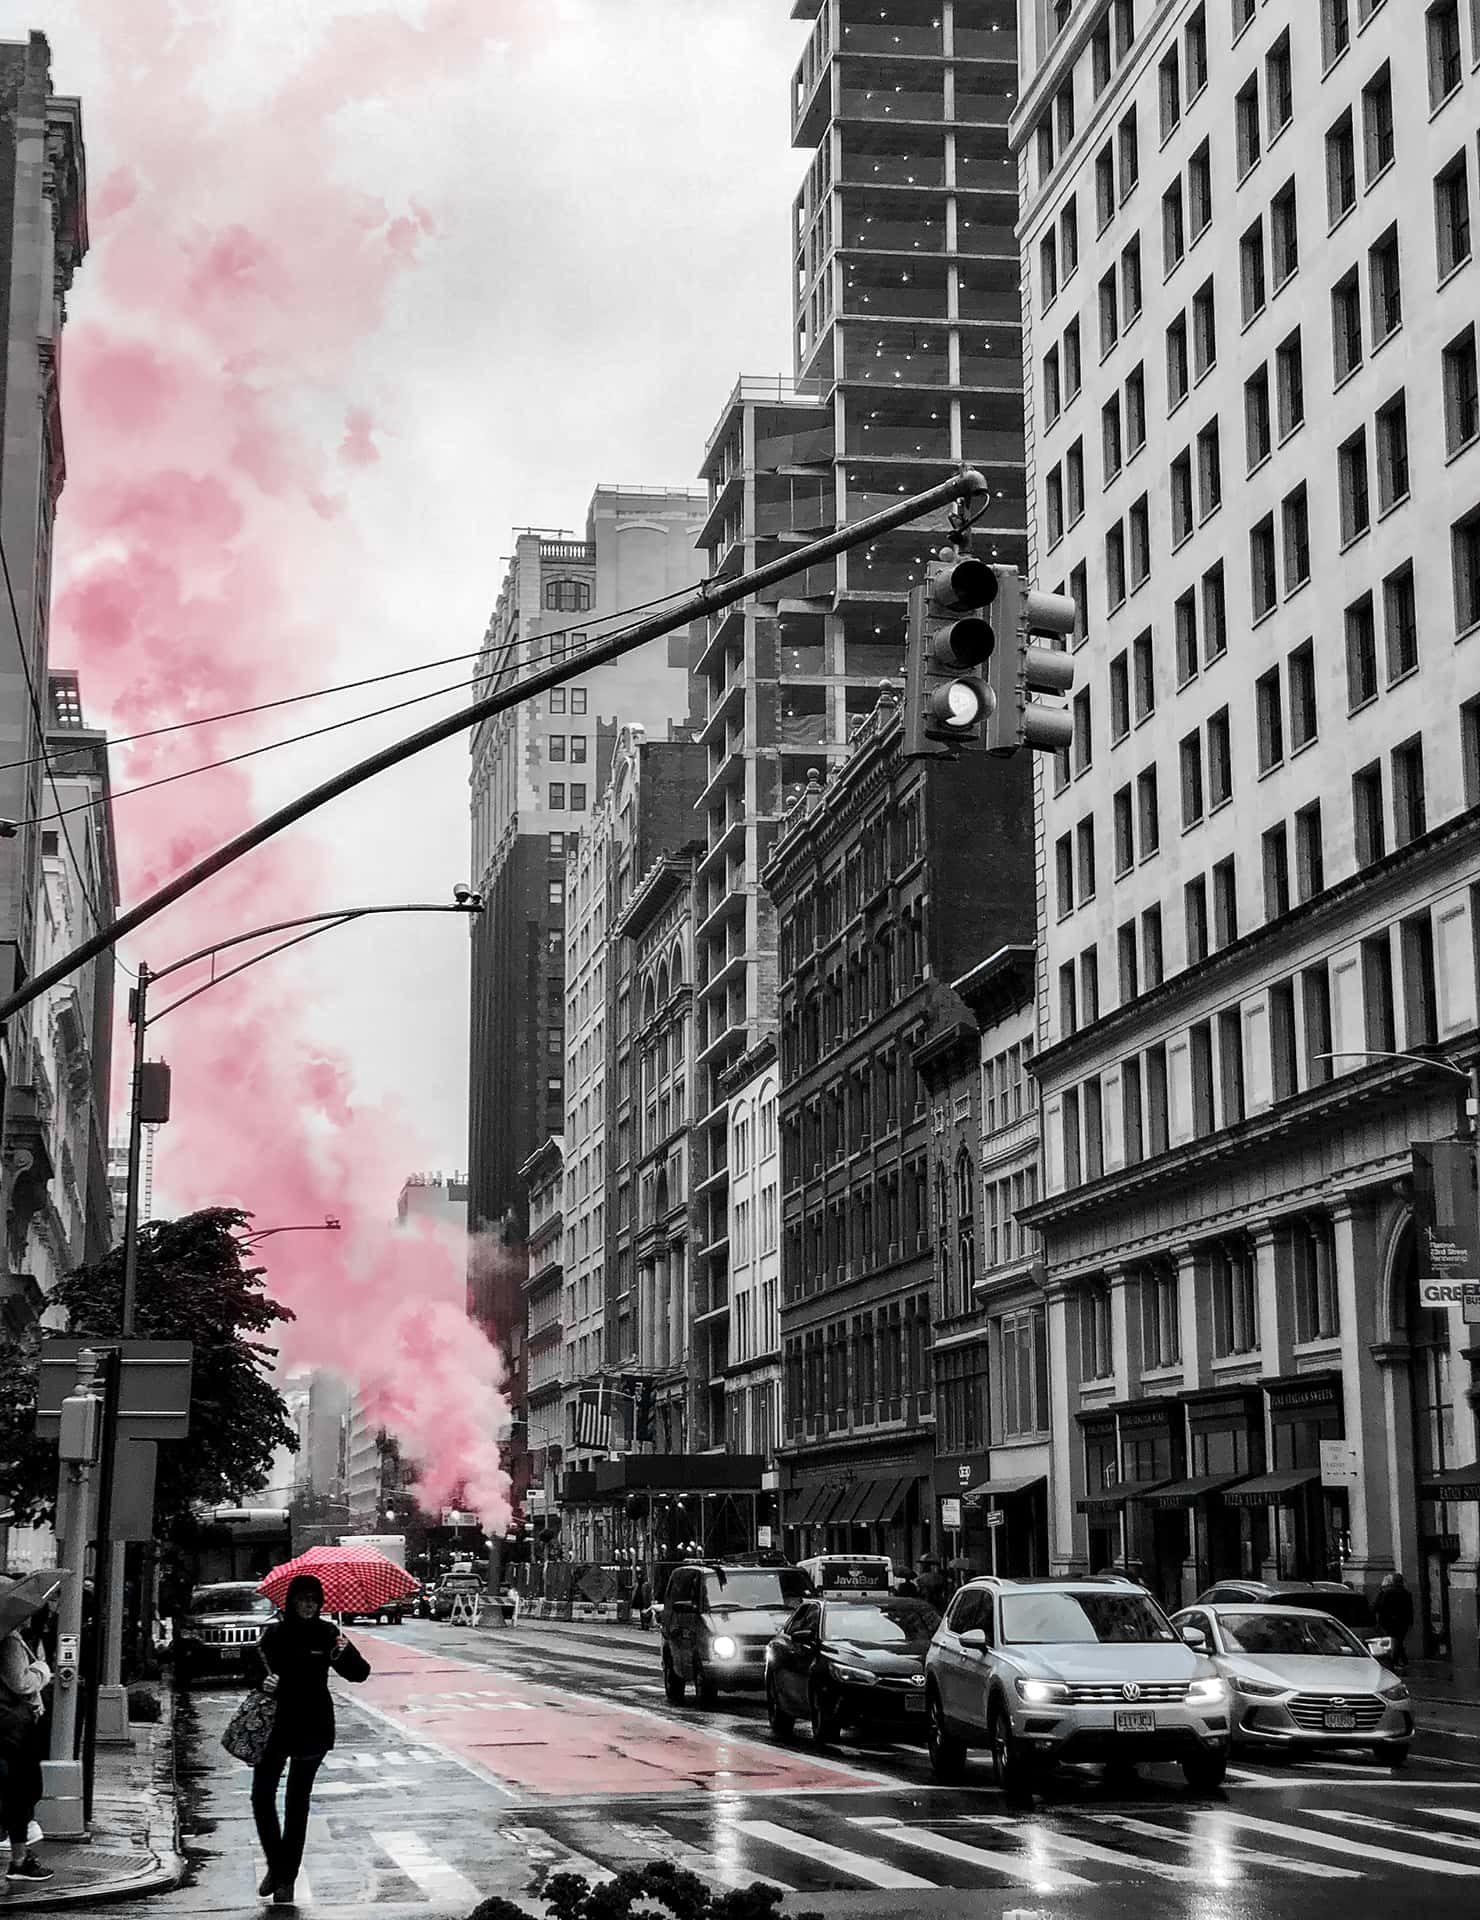 Pink - In a New York minute